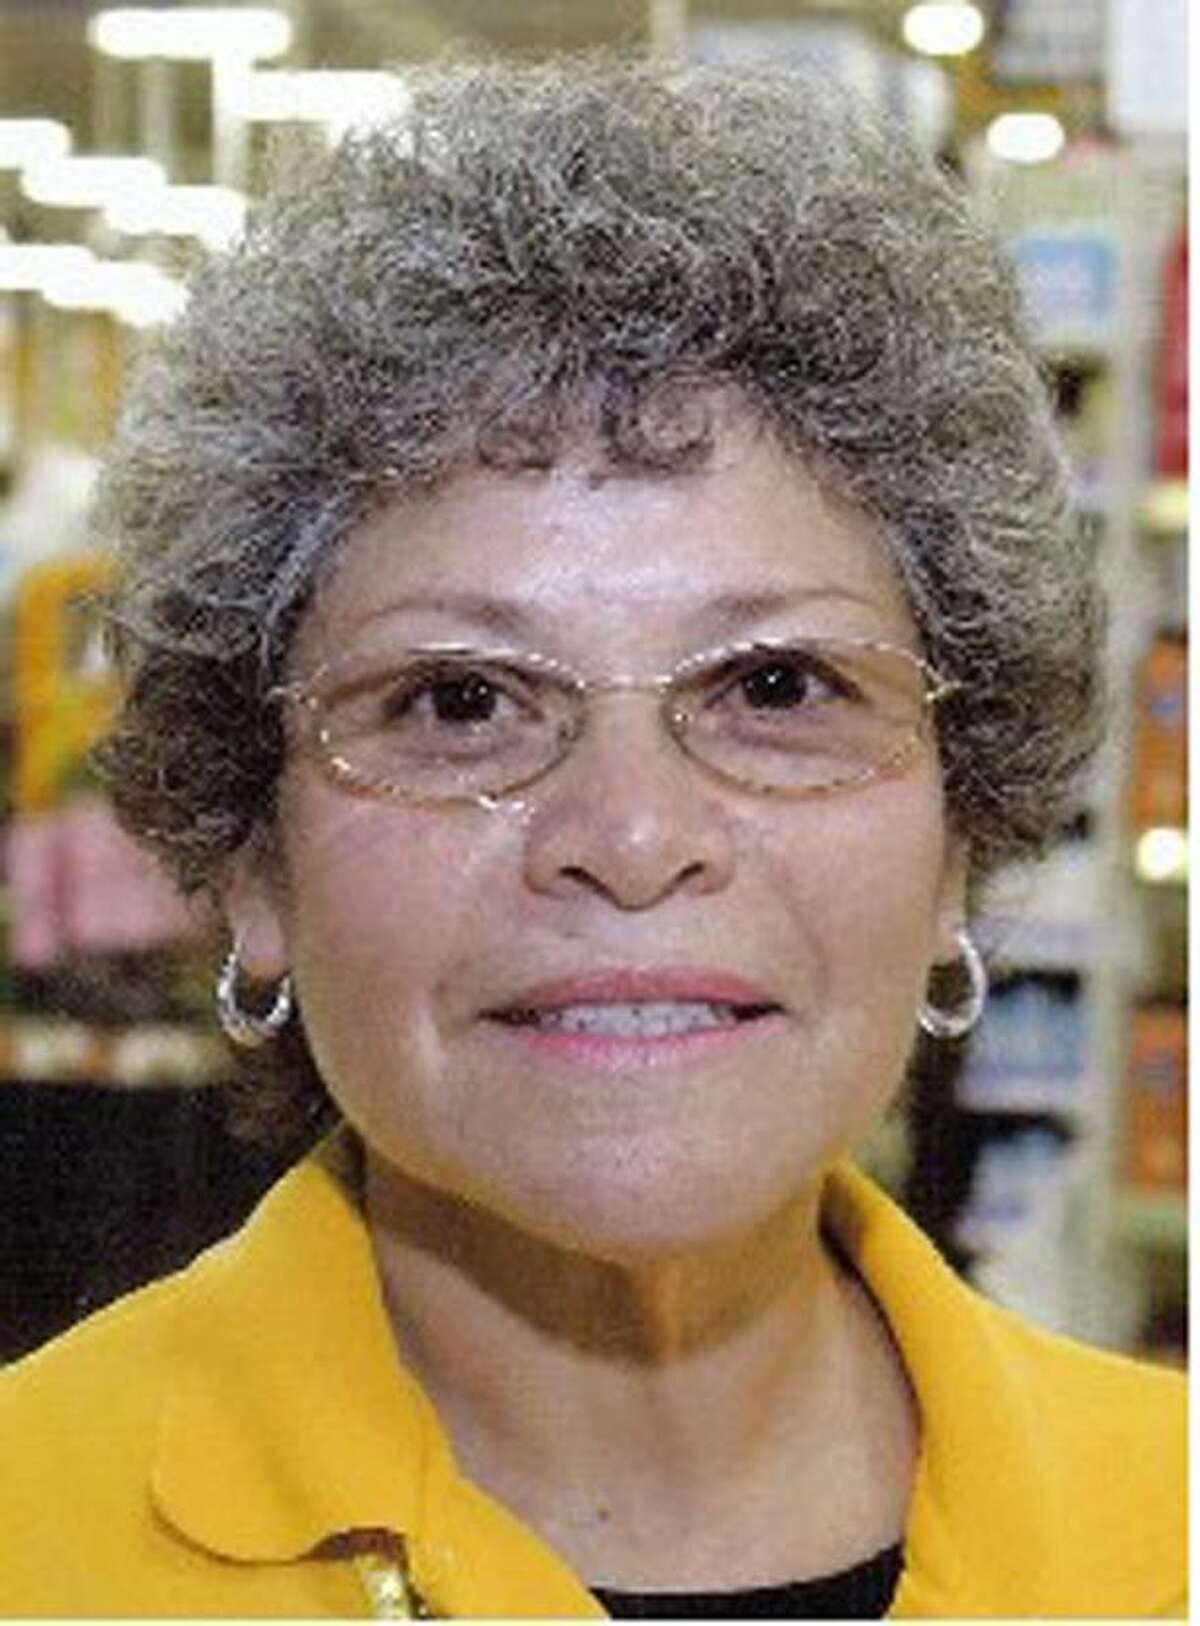 Pauline Diaz was last seen on Dec. 7, 2010, at 2:30 p.m. at the H-E-B on Southeast Military and Goliad in San Antonio.